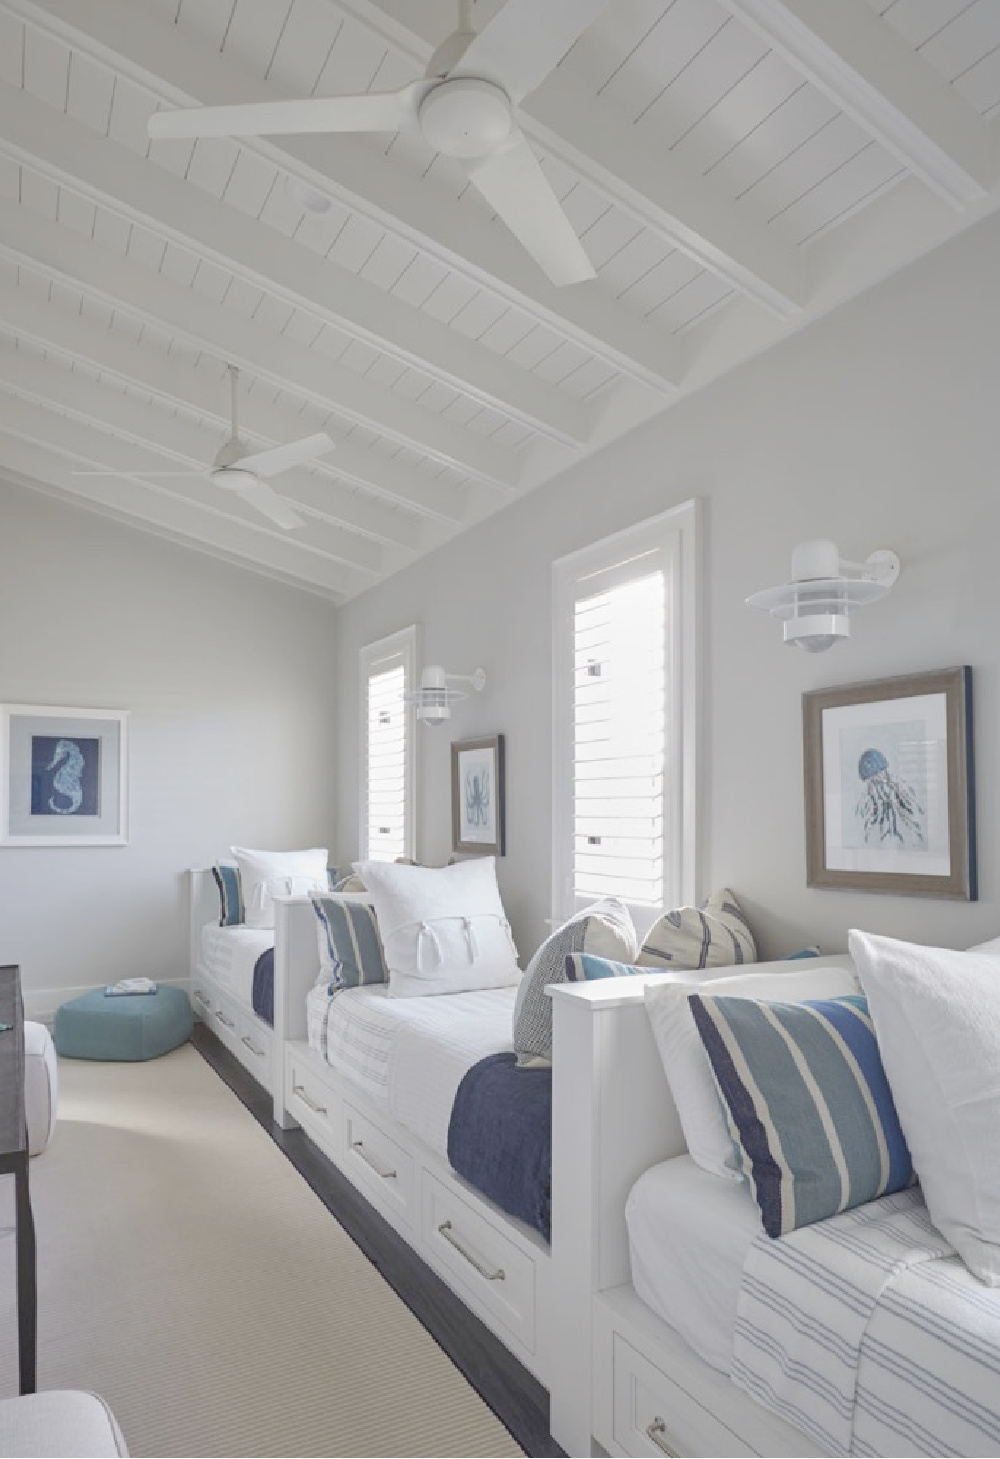 Coastal bedroom with captains beds and exposed rafter style ceiling - architecture: Geoff Chick.